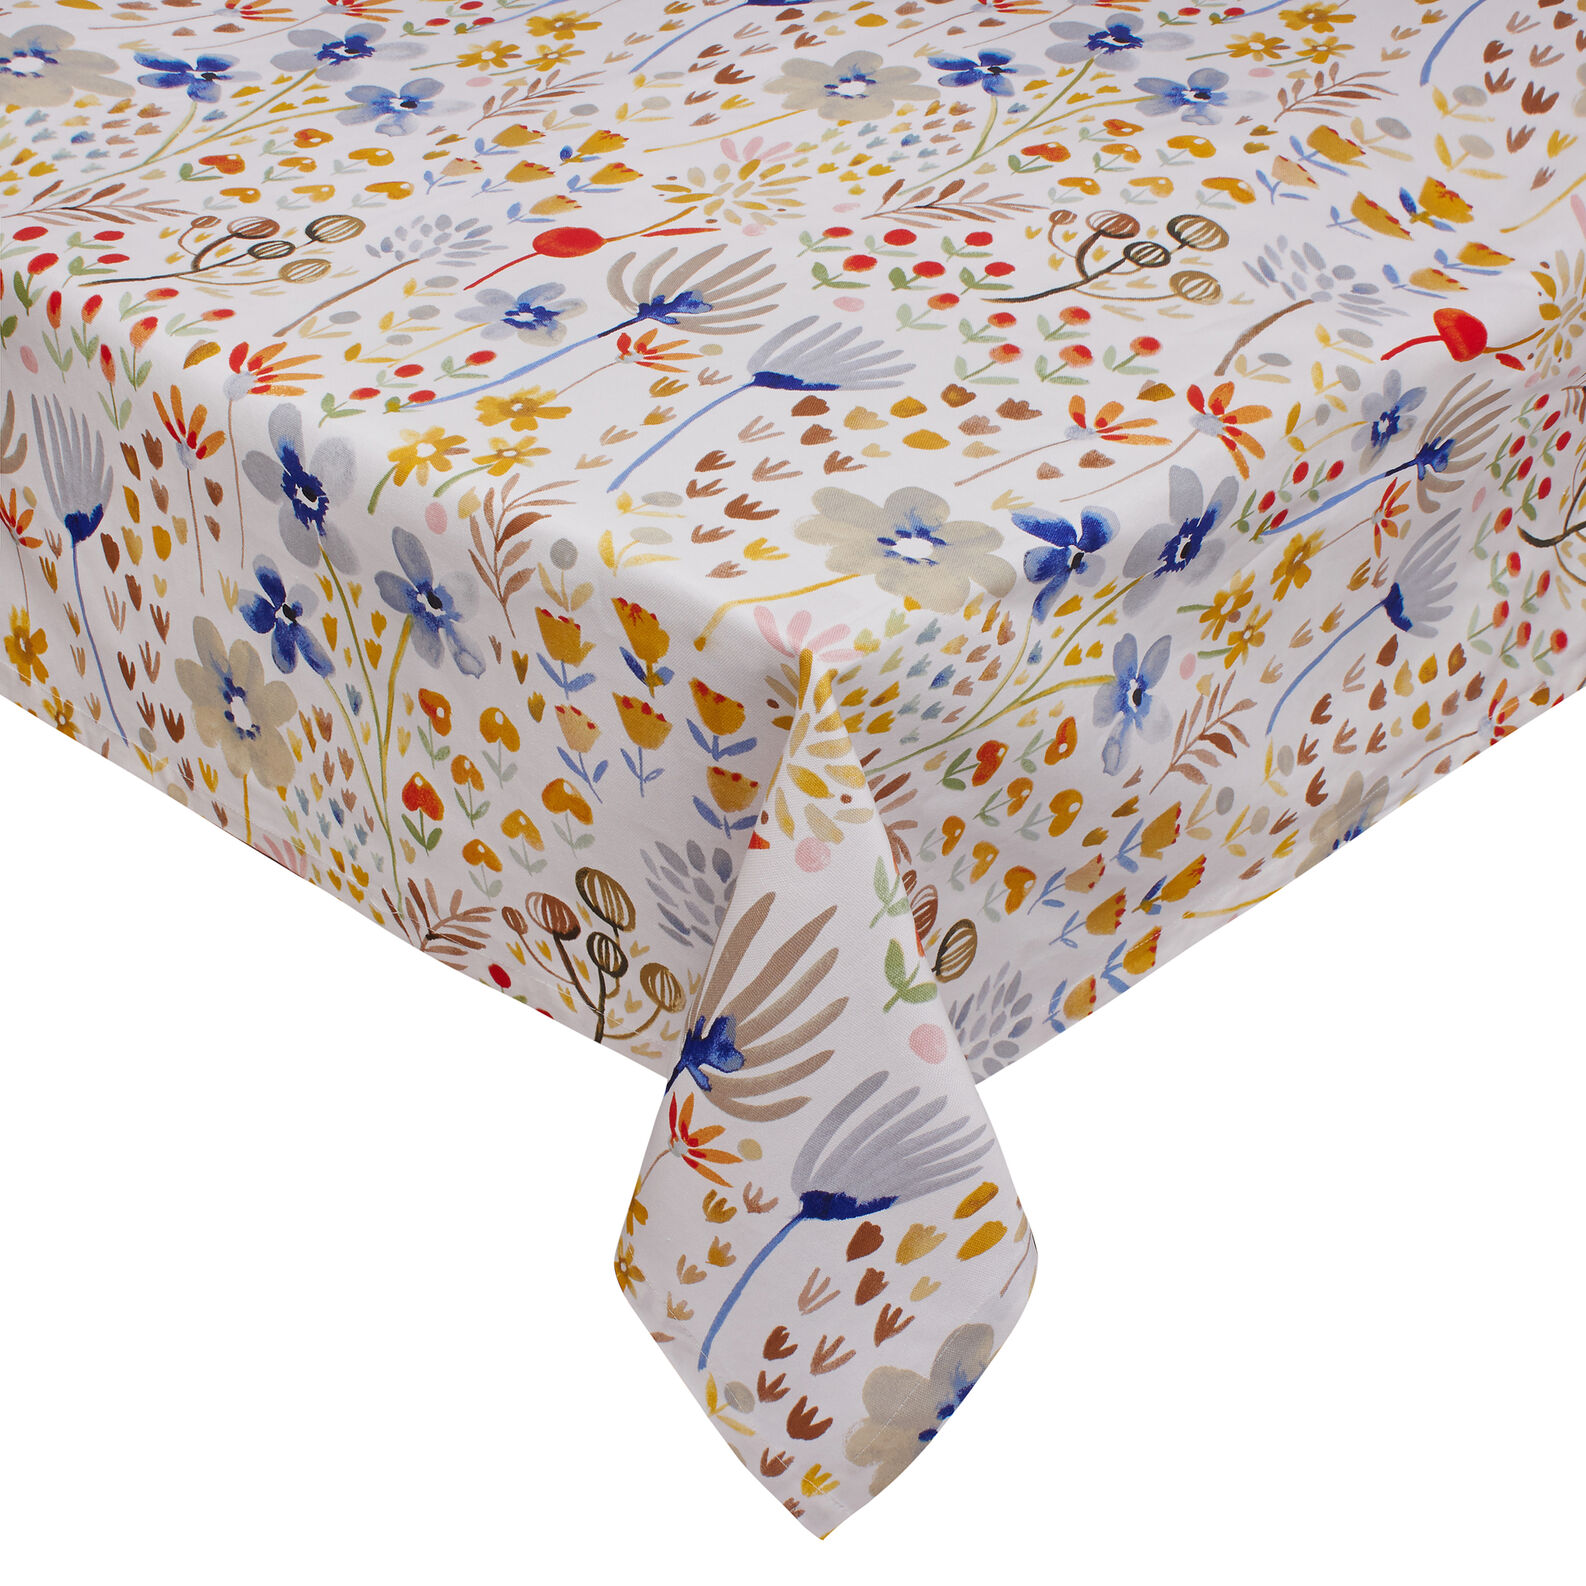 Naif 100% cotton center table